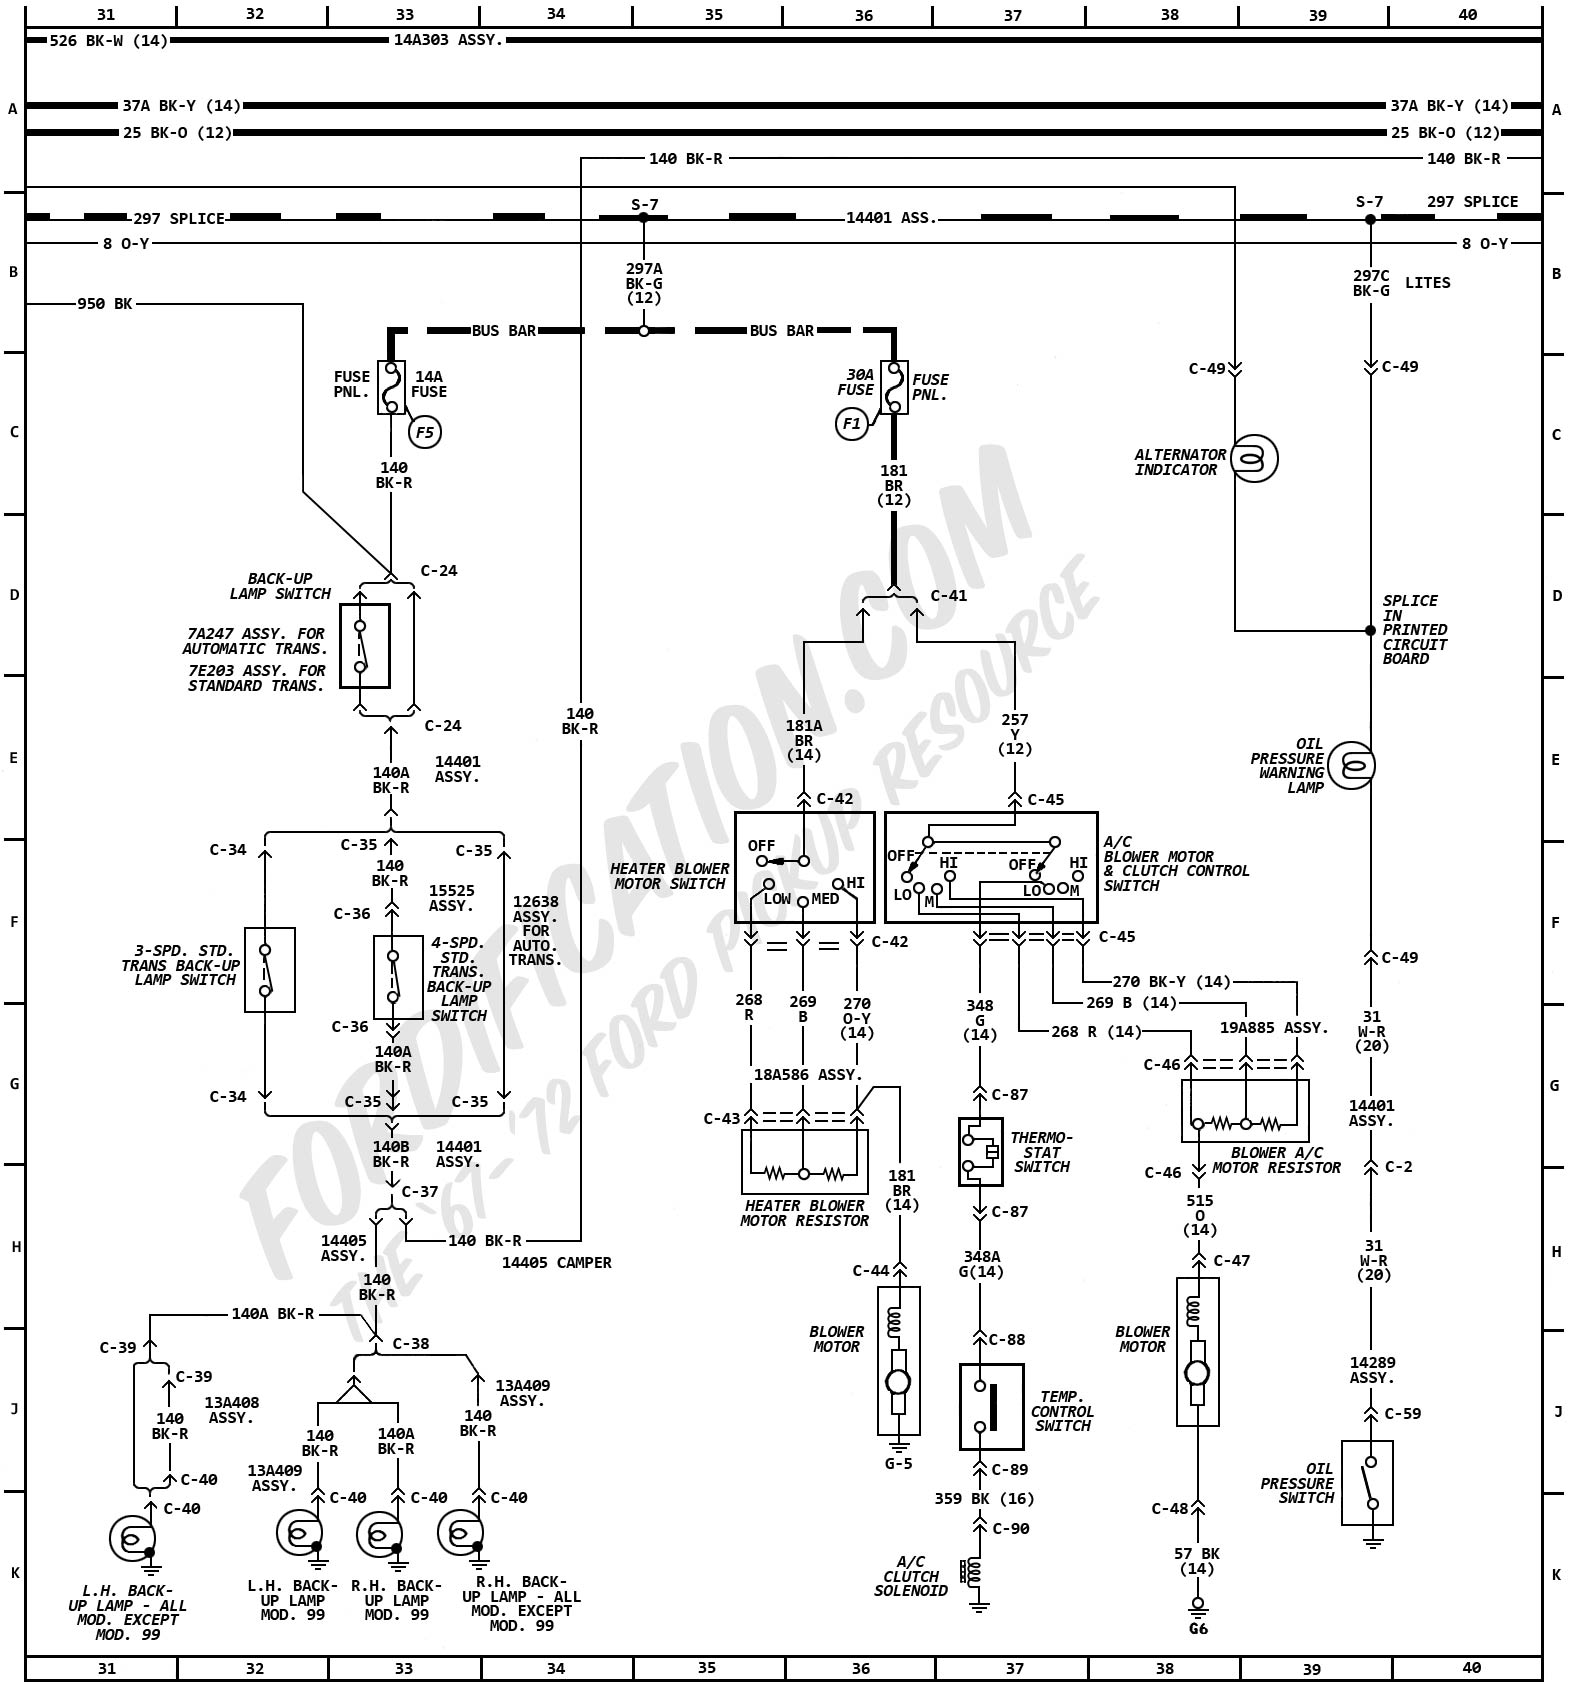 1972 ford truck wiring diagrams fordification com blower motor h 38 4 blower motor and clutch control switch